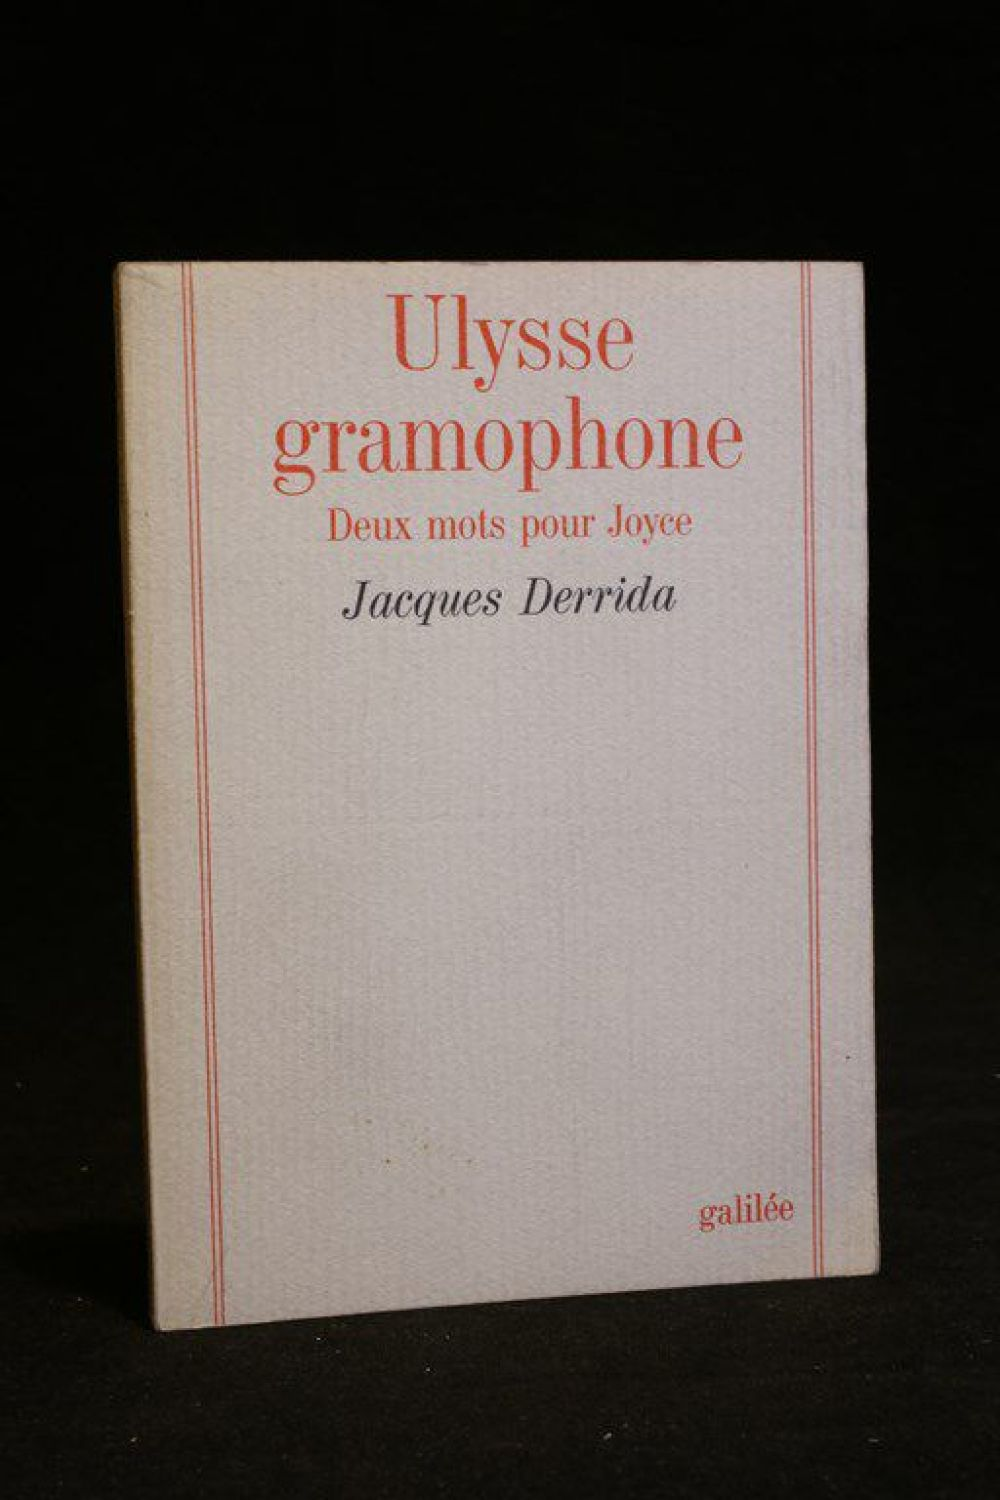 "jacques derrida essay ulysses gramophone Derrida on translation and his  the influence of jacques derrida's work in america is vast and  (1985) 4 ""ulysses gramophone hear say yes in joyce"" ."